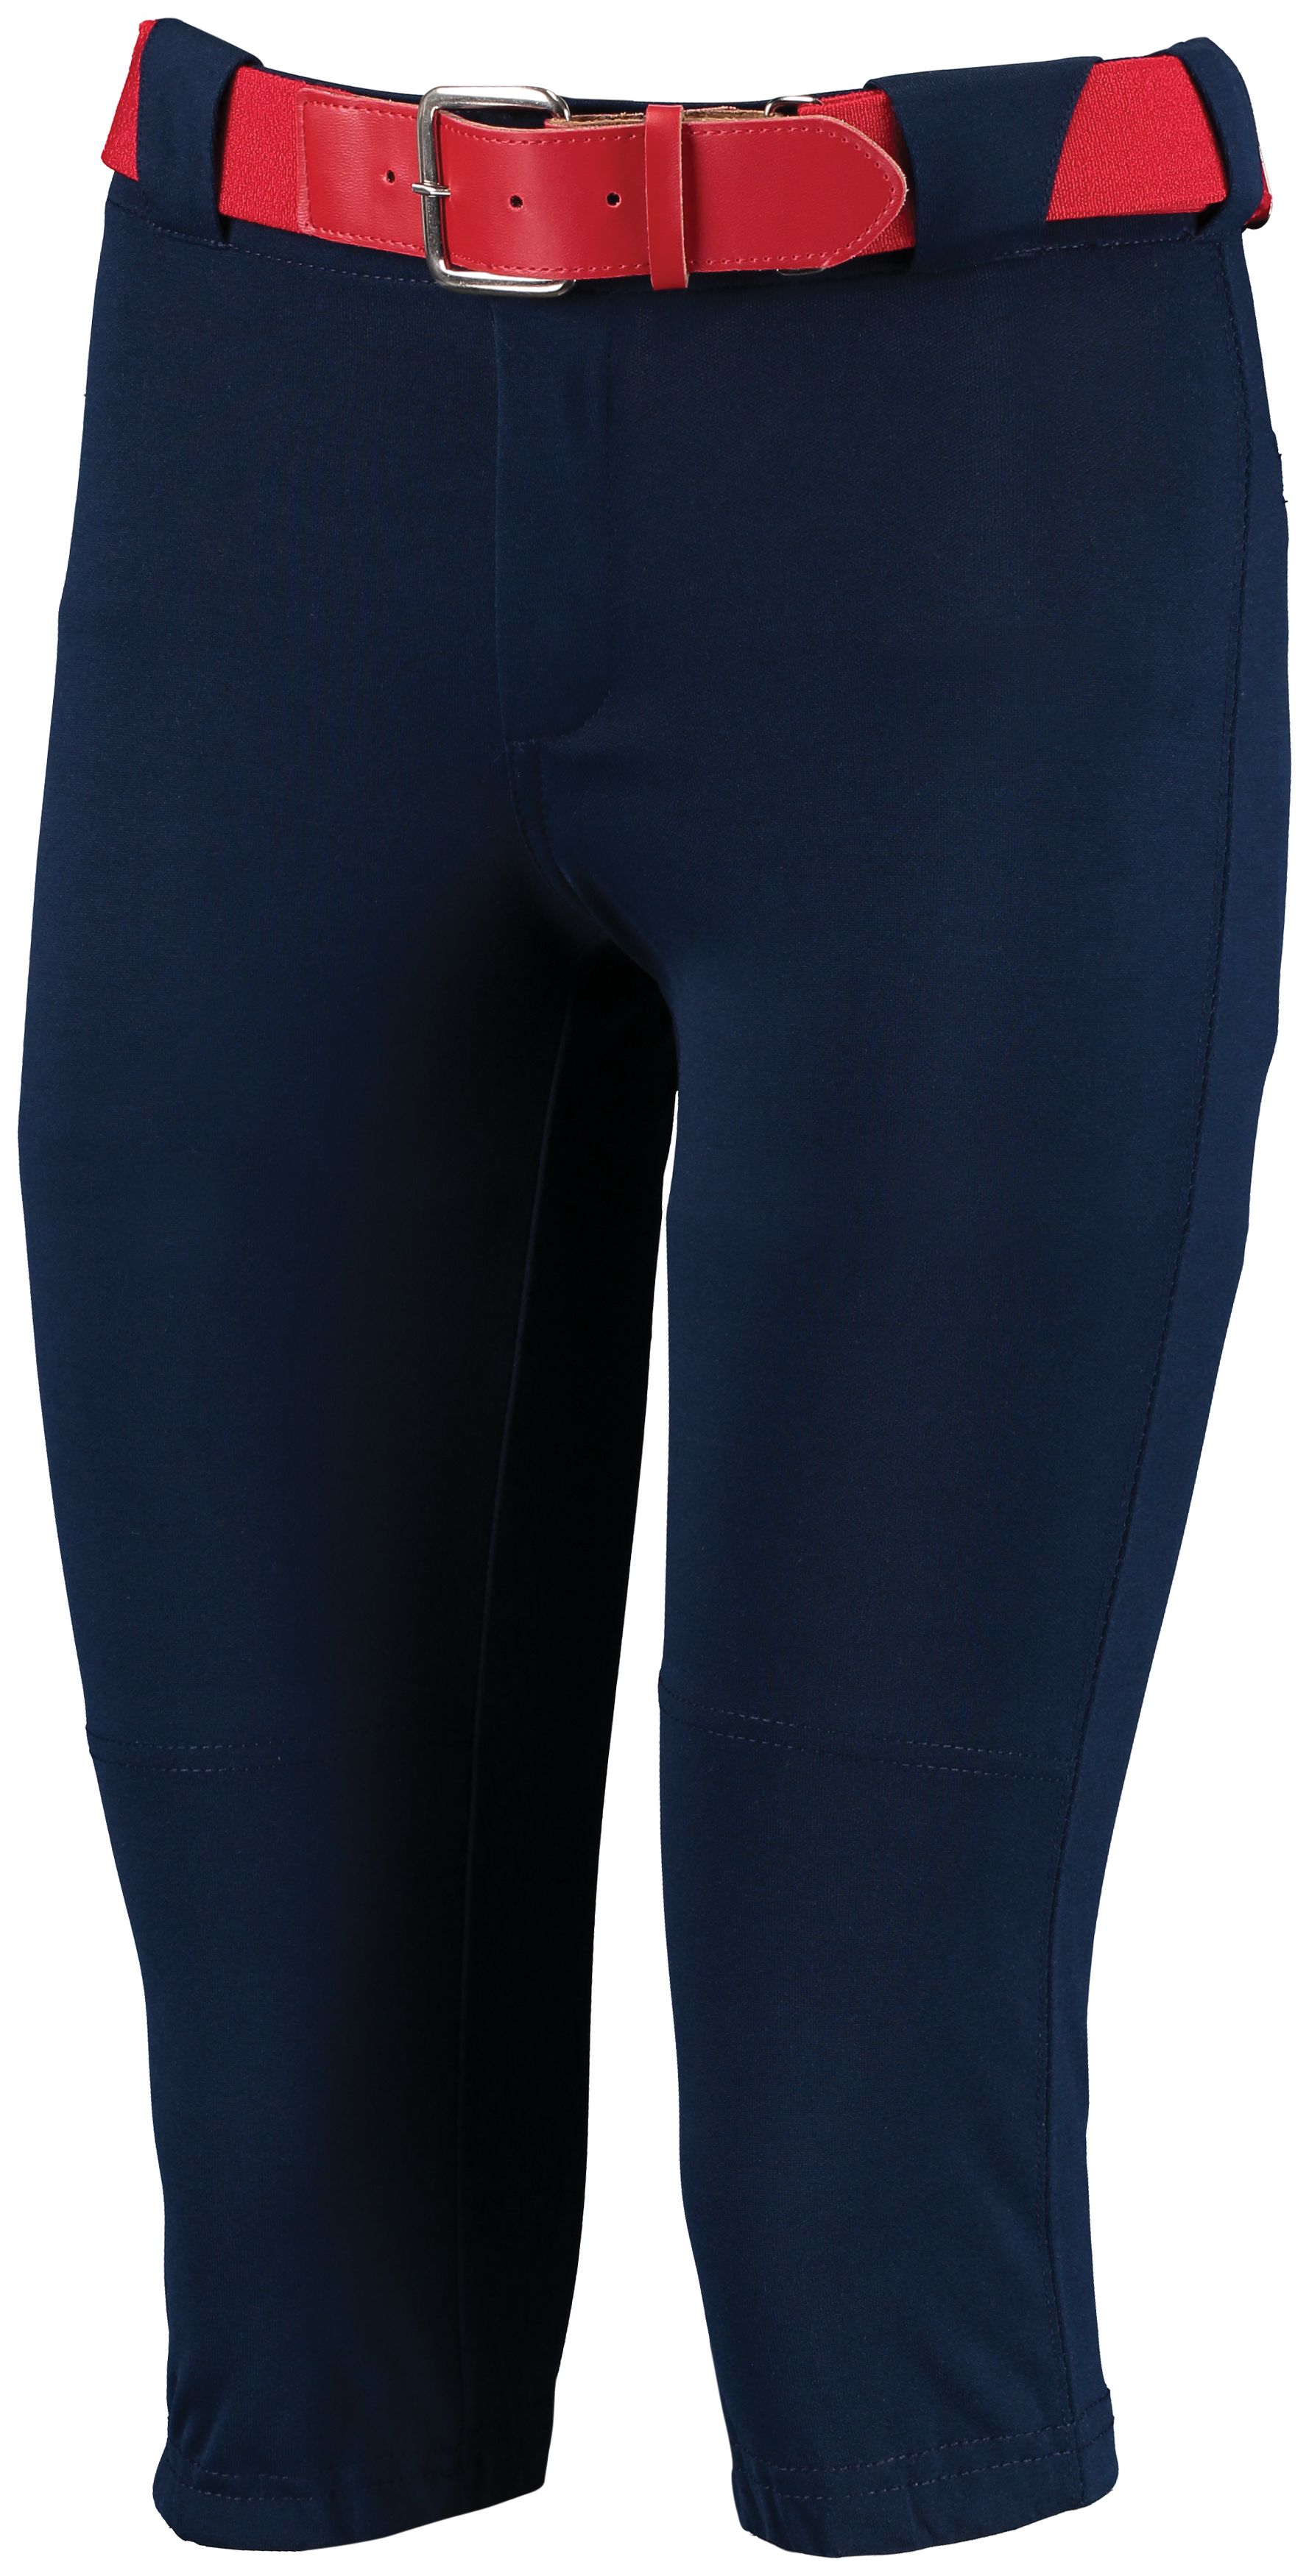 Girls Low Rise Knicker Length Pant - Navy